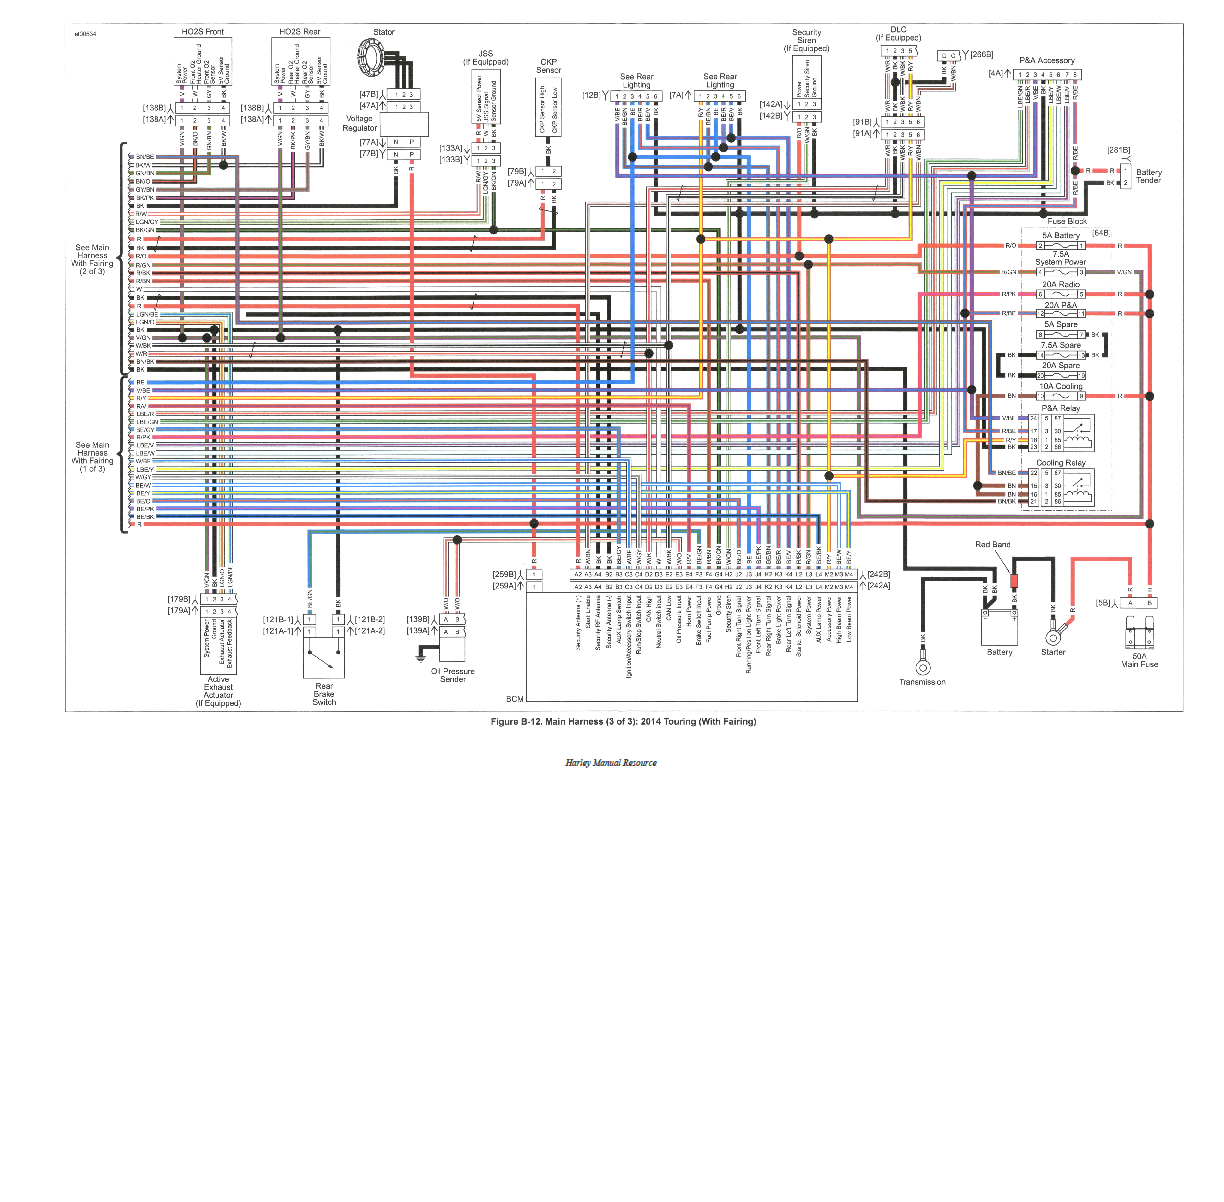 2006 Flhtcui Wiring Diagram Need 2014 Or Later Street Glide Taillight Wiring Diagram